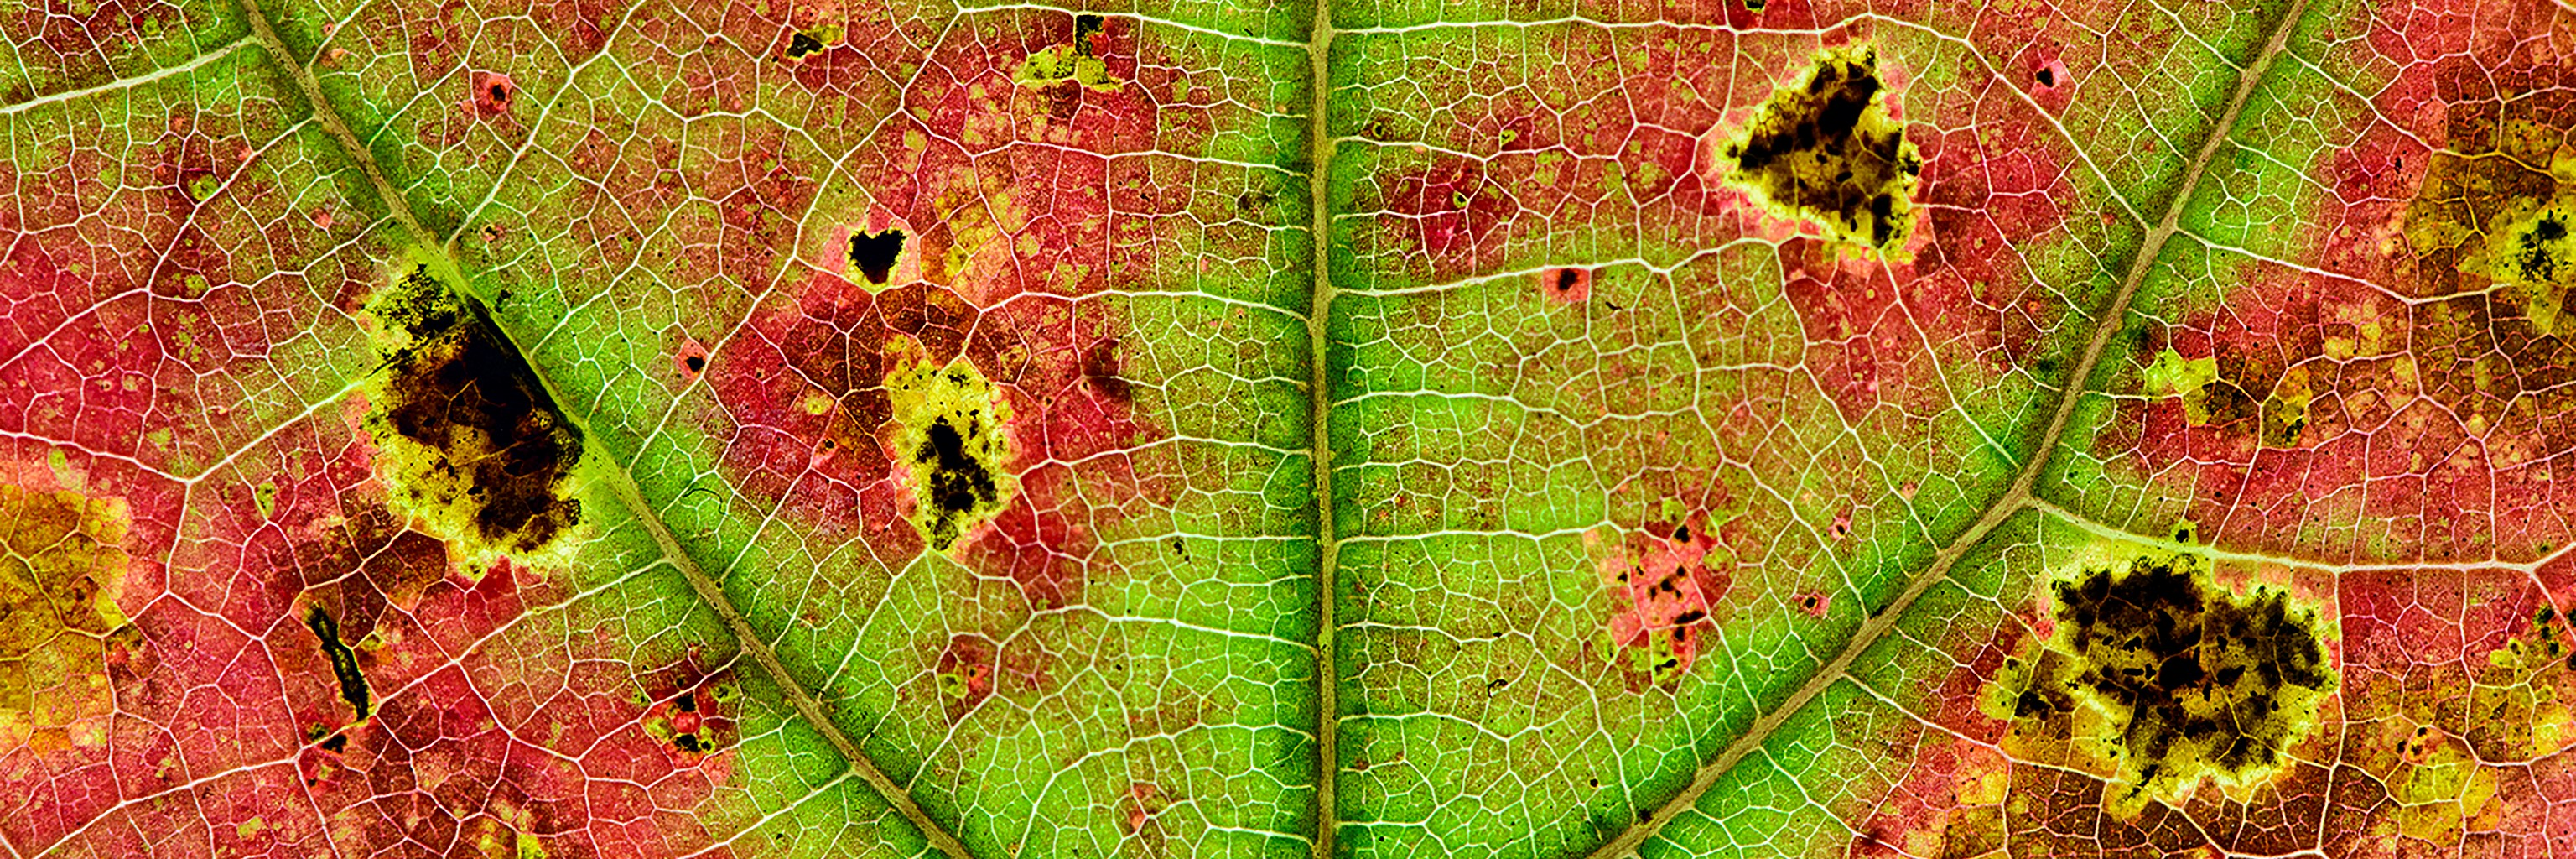 A close up of the veins of a diseased leaf.